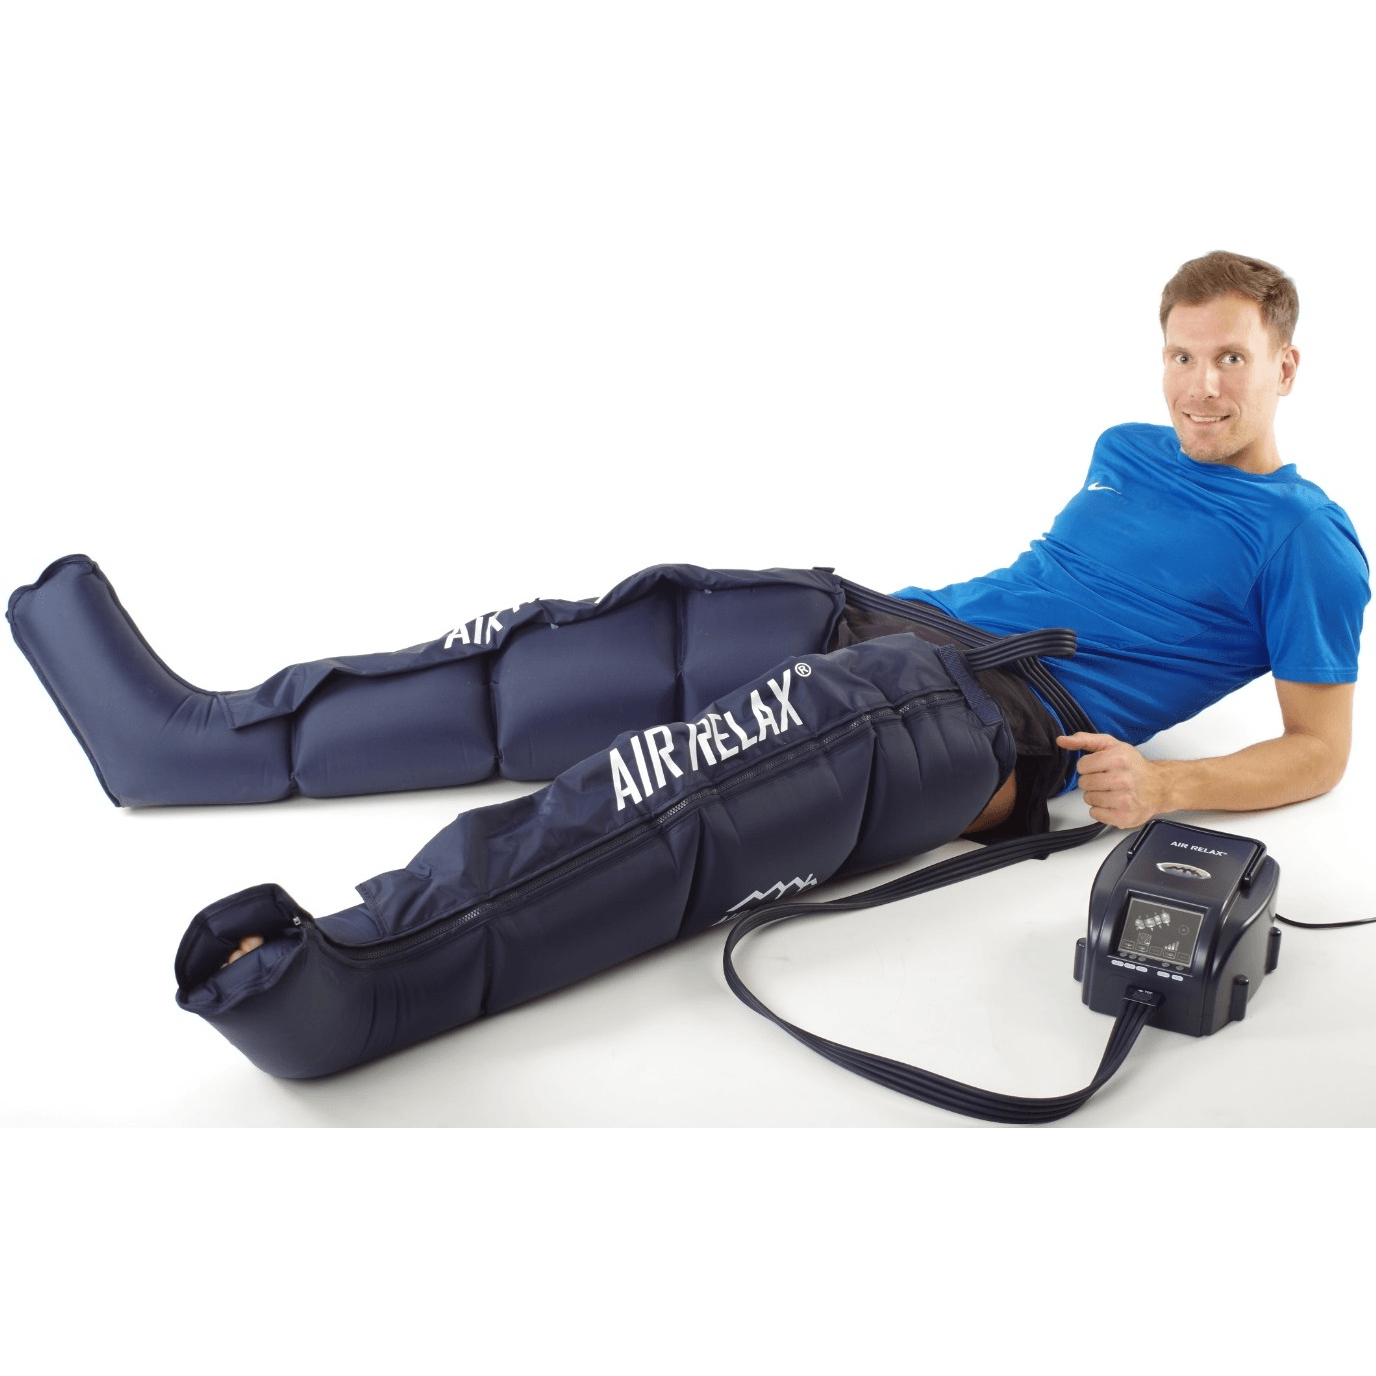 Air Relax Recovery Boots - Hoitola Kuulas